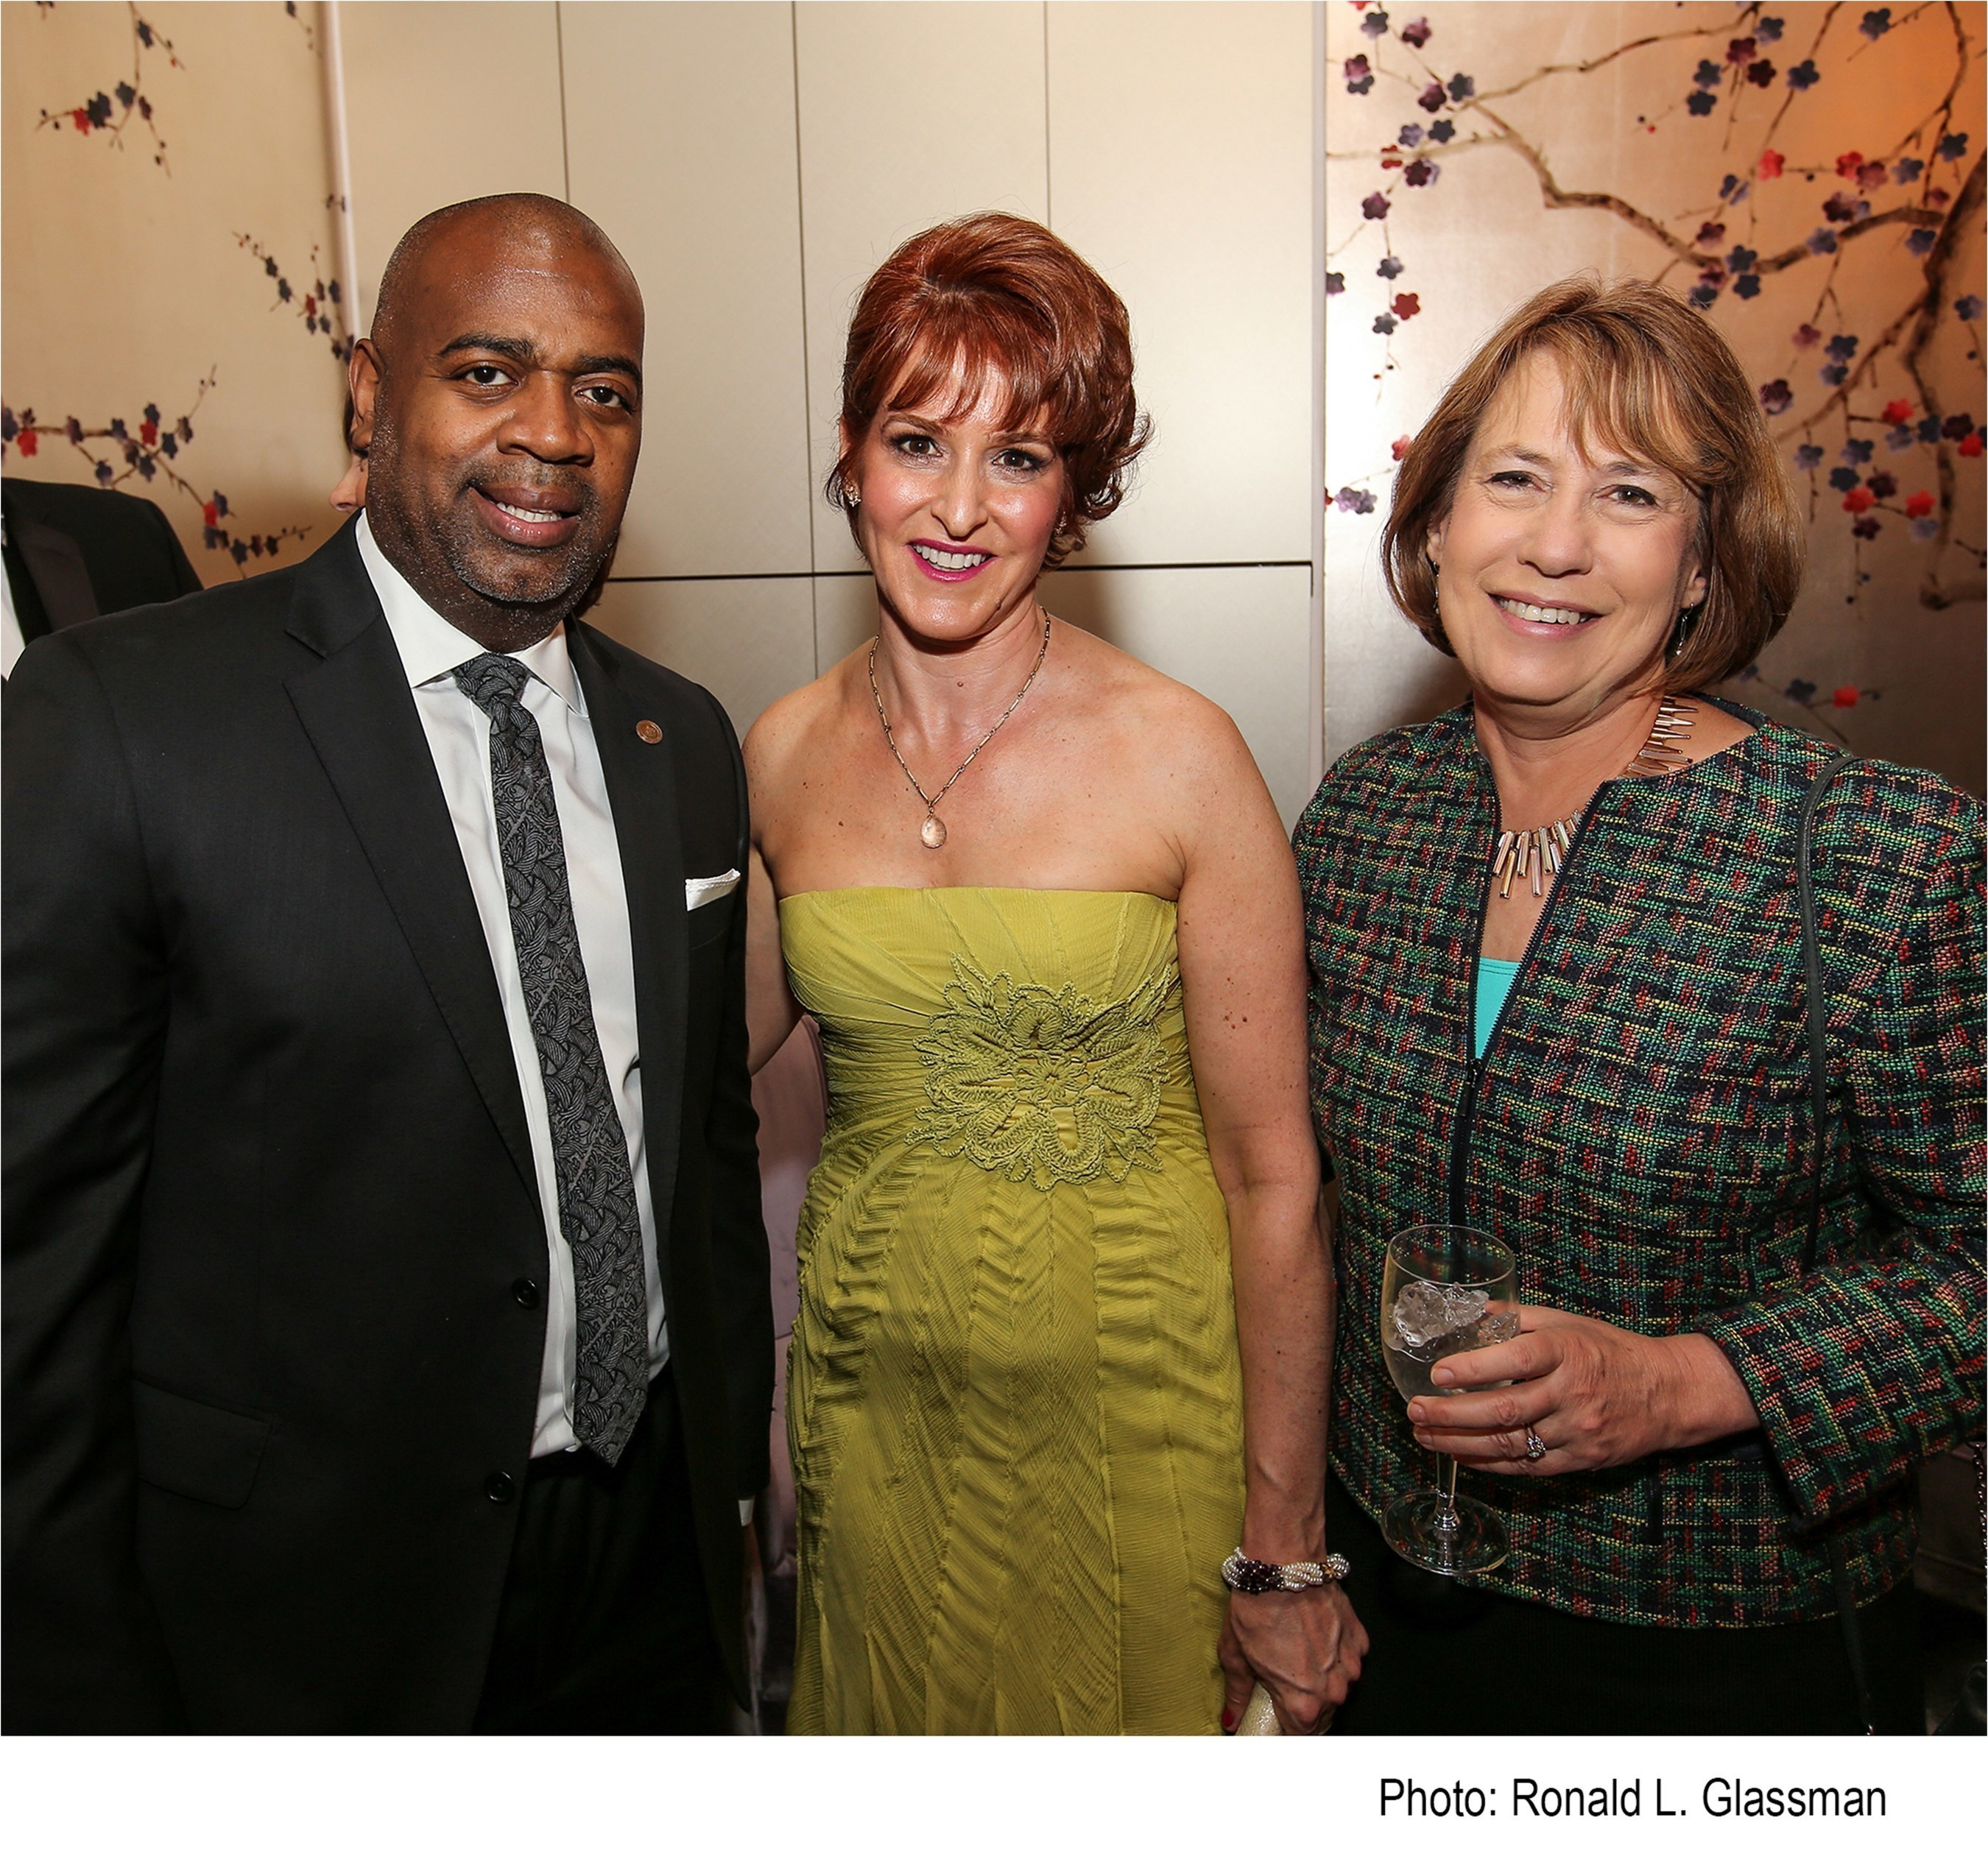 From left to right: Ras Baraka, Mayor, City of Newark, Gabrielle L. Kurlander, President and CEO, All Stars Project, Inc. and Sheila C. Bair,  President, Washington College at the All Stars Project 2016 National Gala at Lincoln Center in New York City on April 18, 2016.  The event raised over $2M in private funding for All Stars' afterschool development programs for inner-city youth across the country.